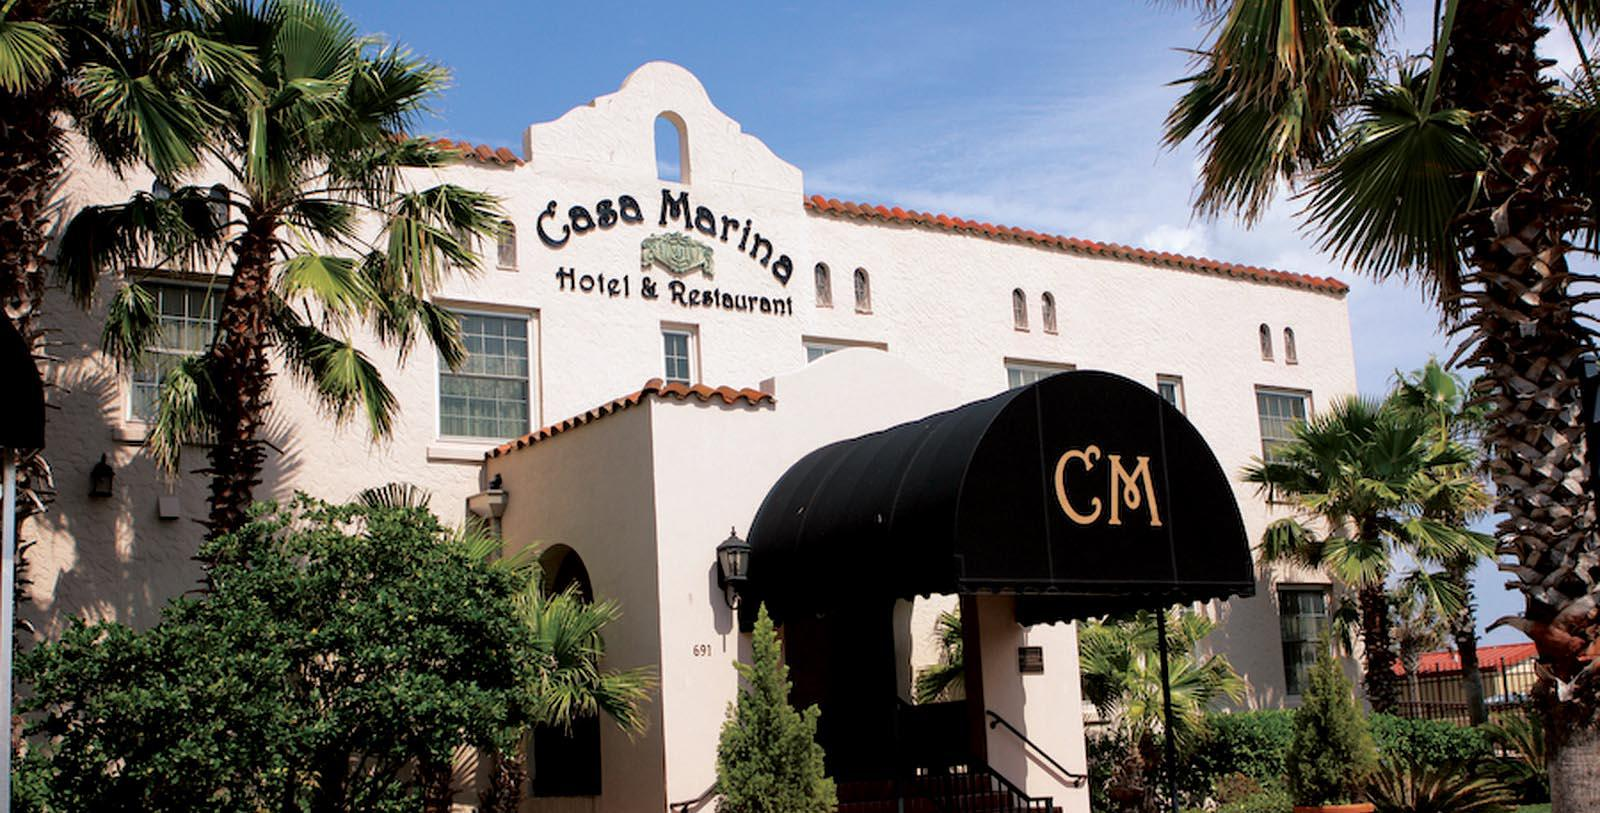 Image of hotel exterior at Casa Marina Hotel and Restaurant, 1925, Member of Historic Hotels of America, in Jacksonville, Florida, Discover